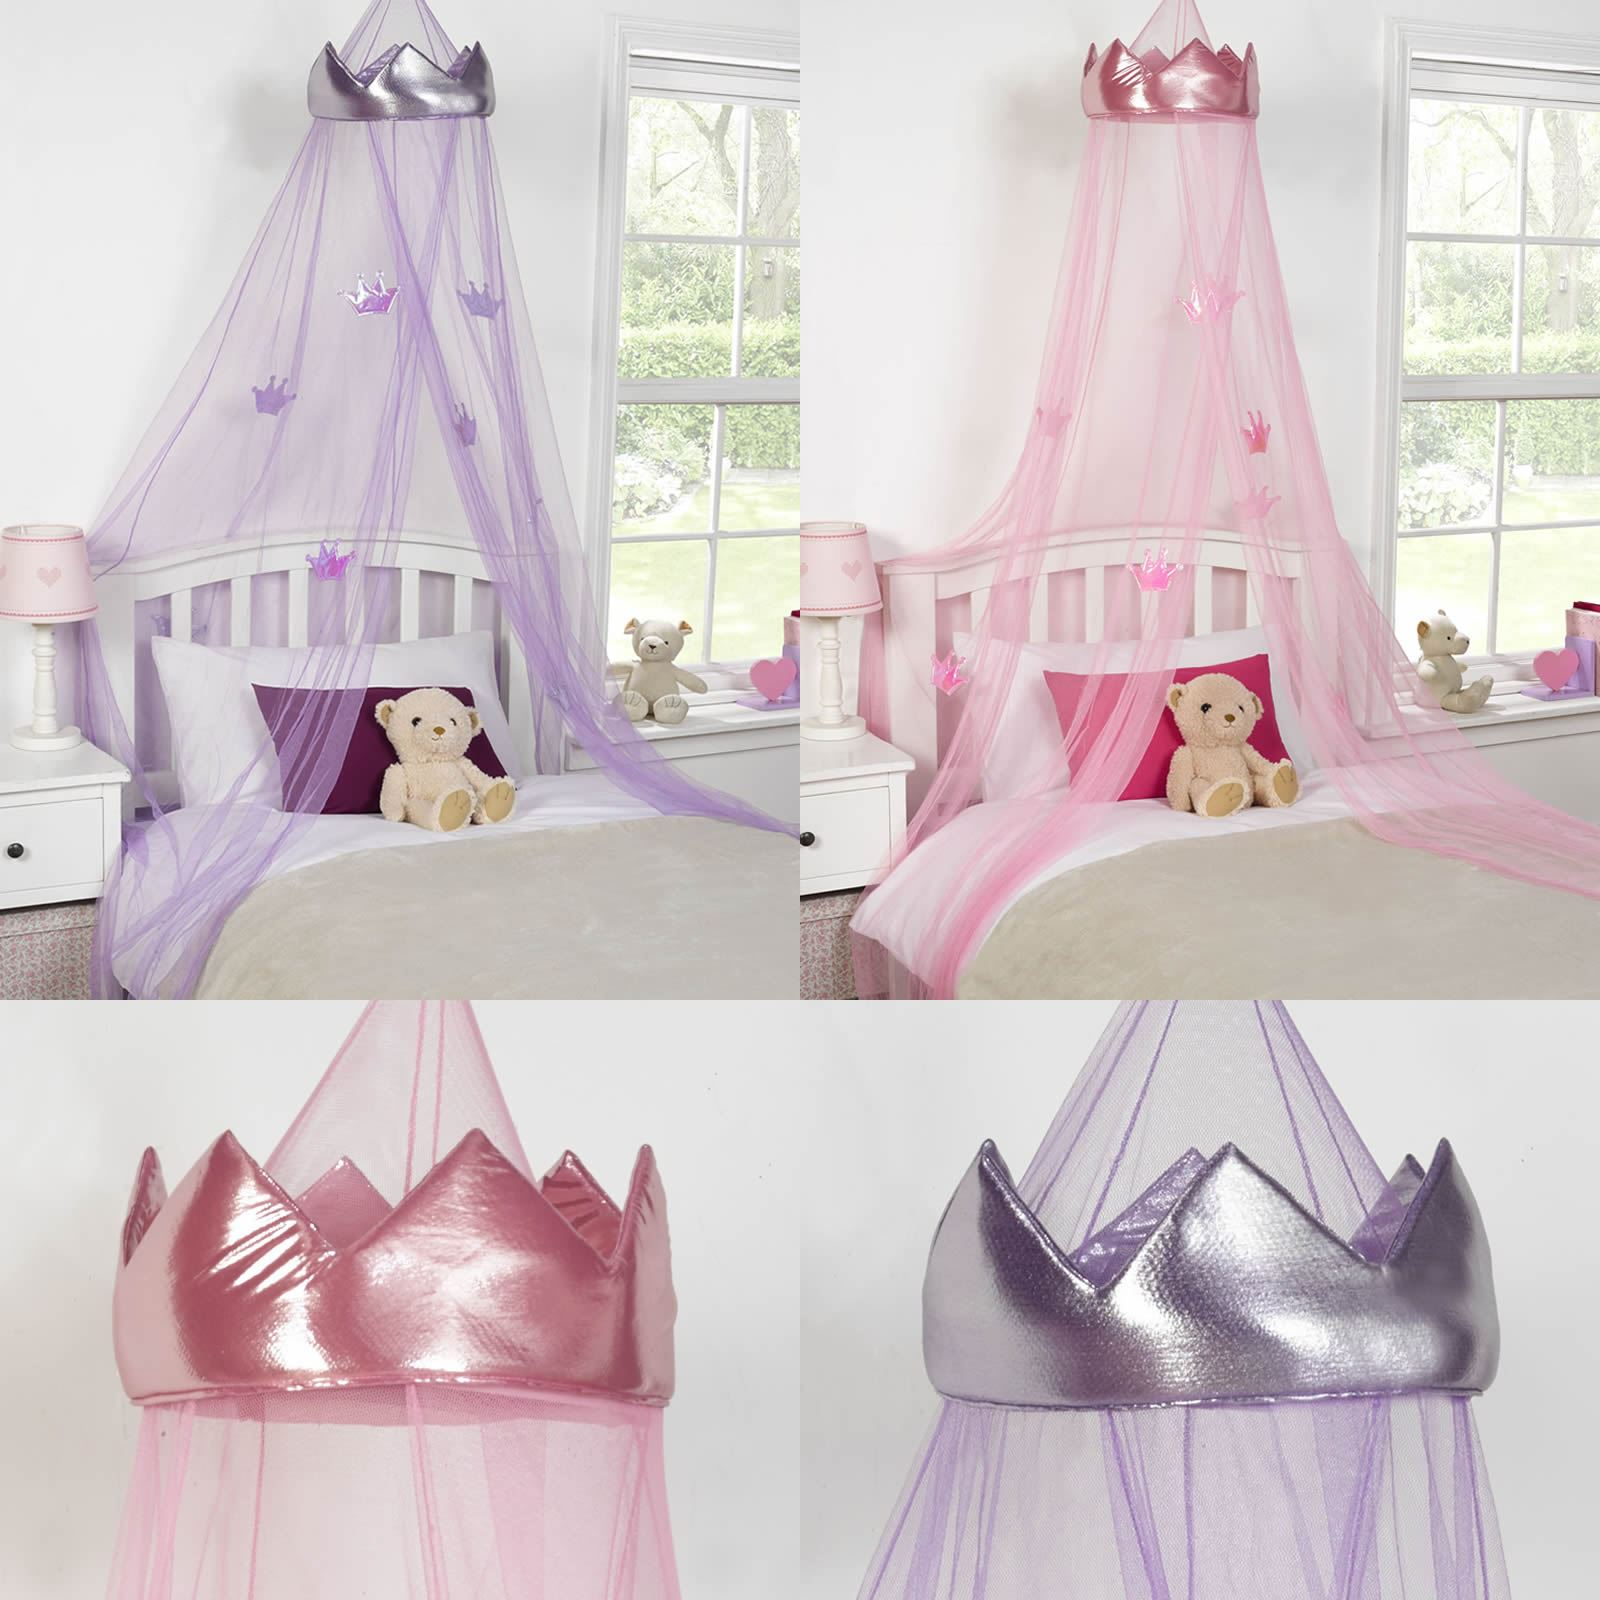 Girly Princess Bedroom Ideas: Princess Crown Bed Canopy Kids Childrens Girls Insect